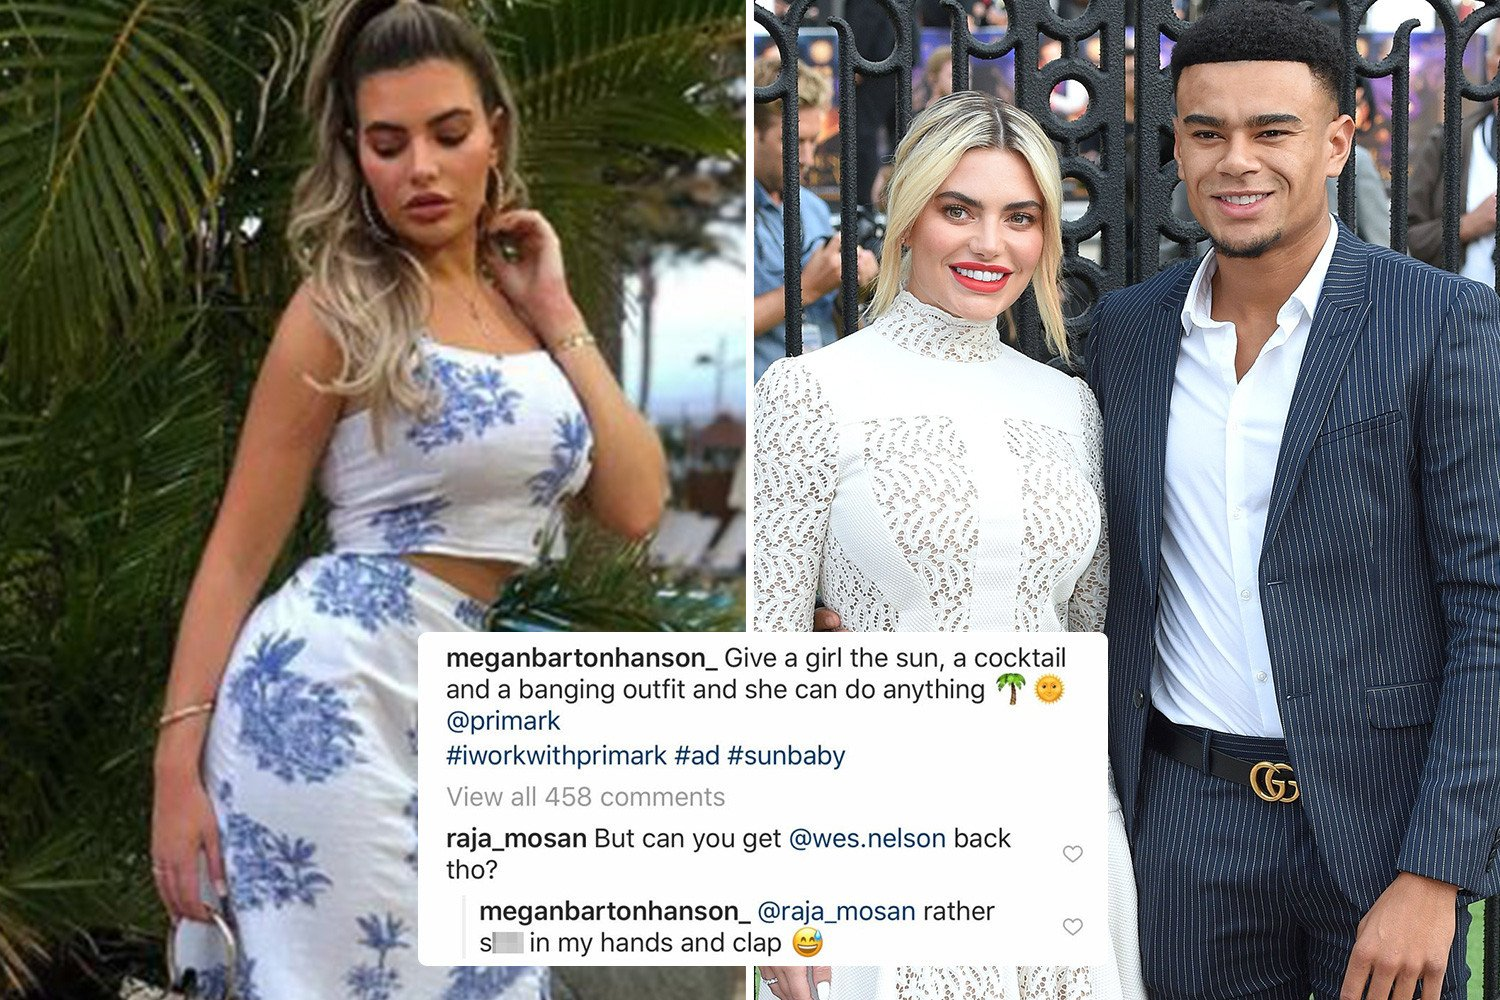 Megan Barton-Hanson claims she'd rather 's**t in her own hand' than get back with ex Wes Nelson